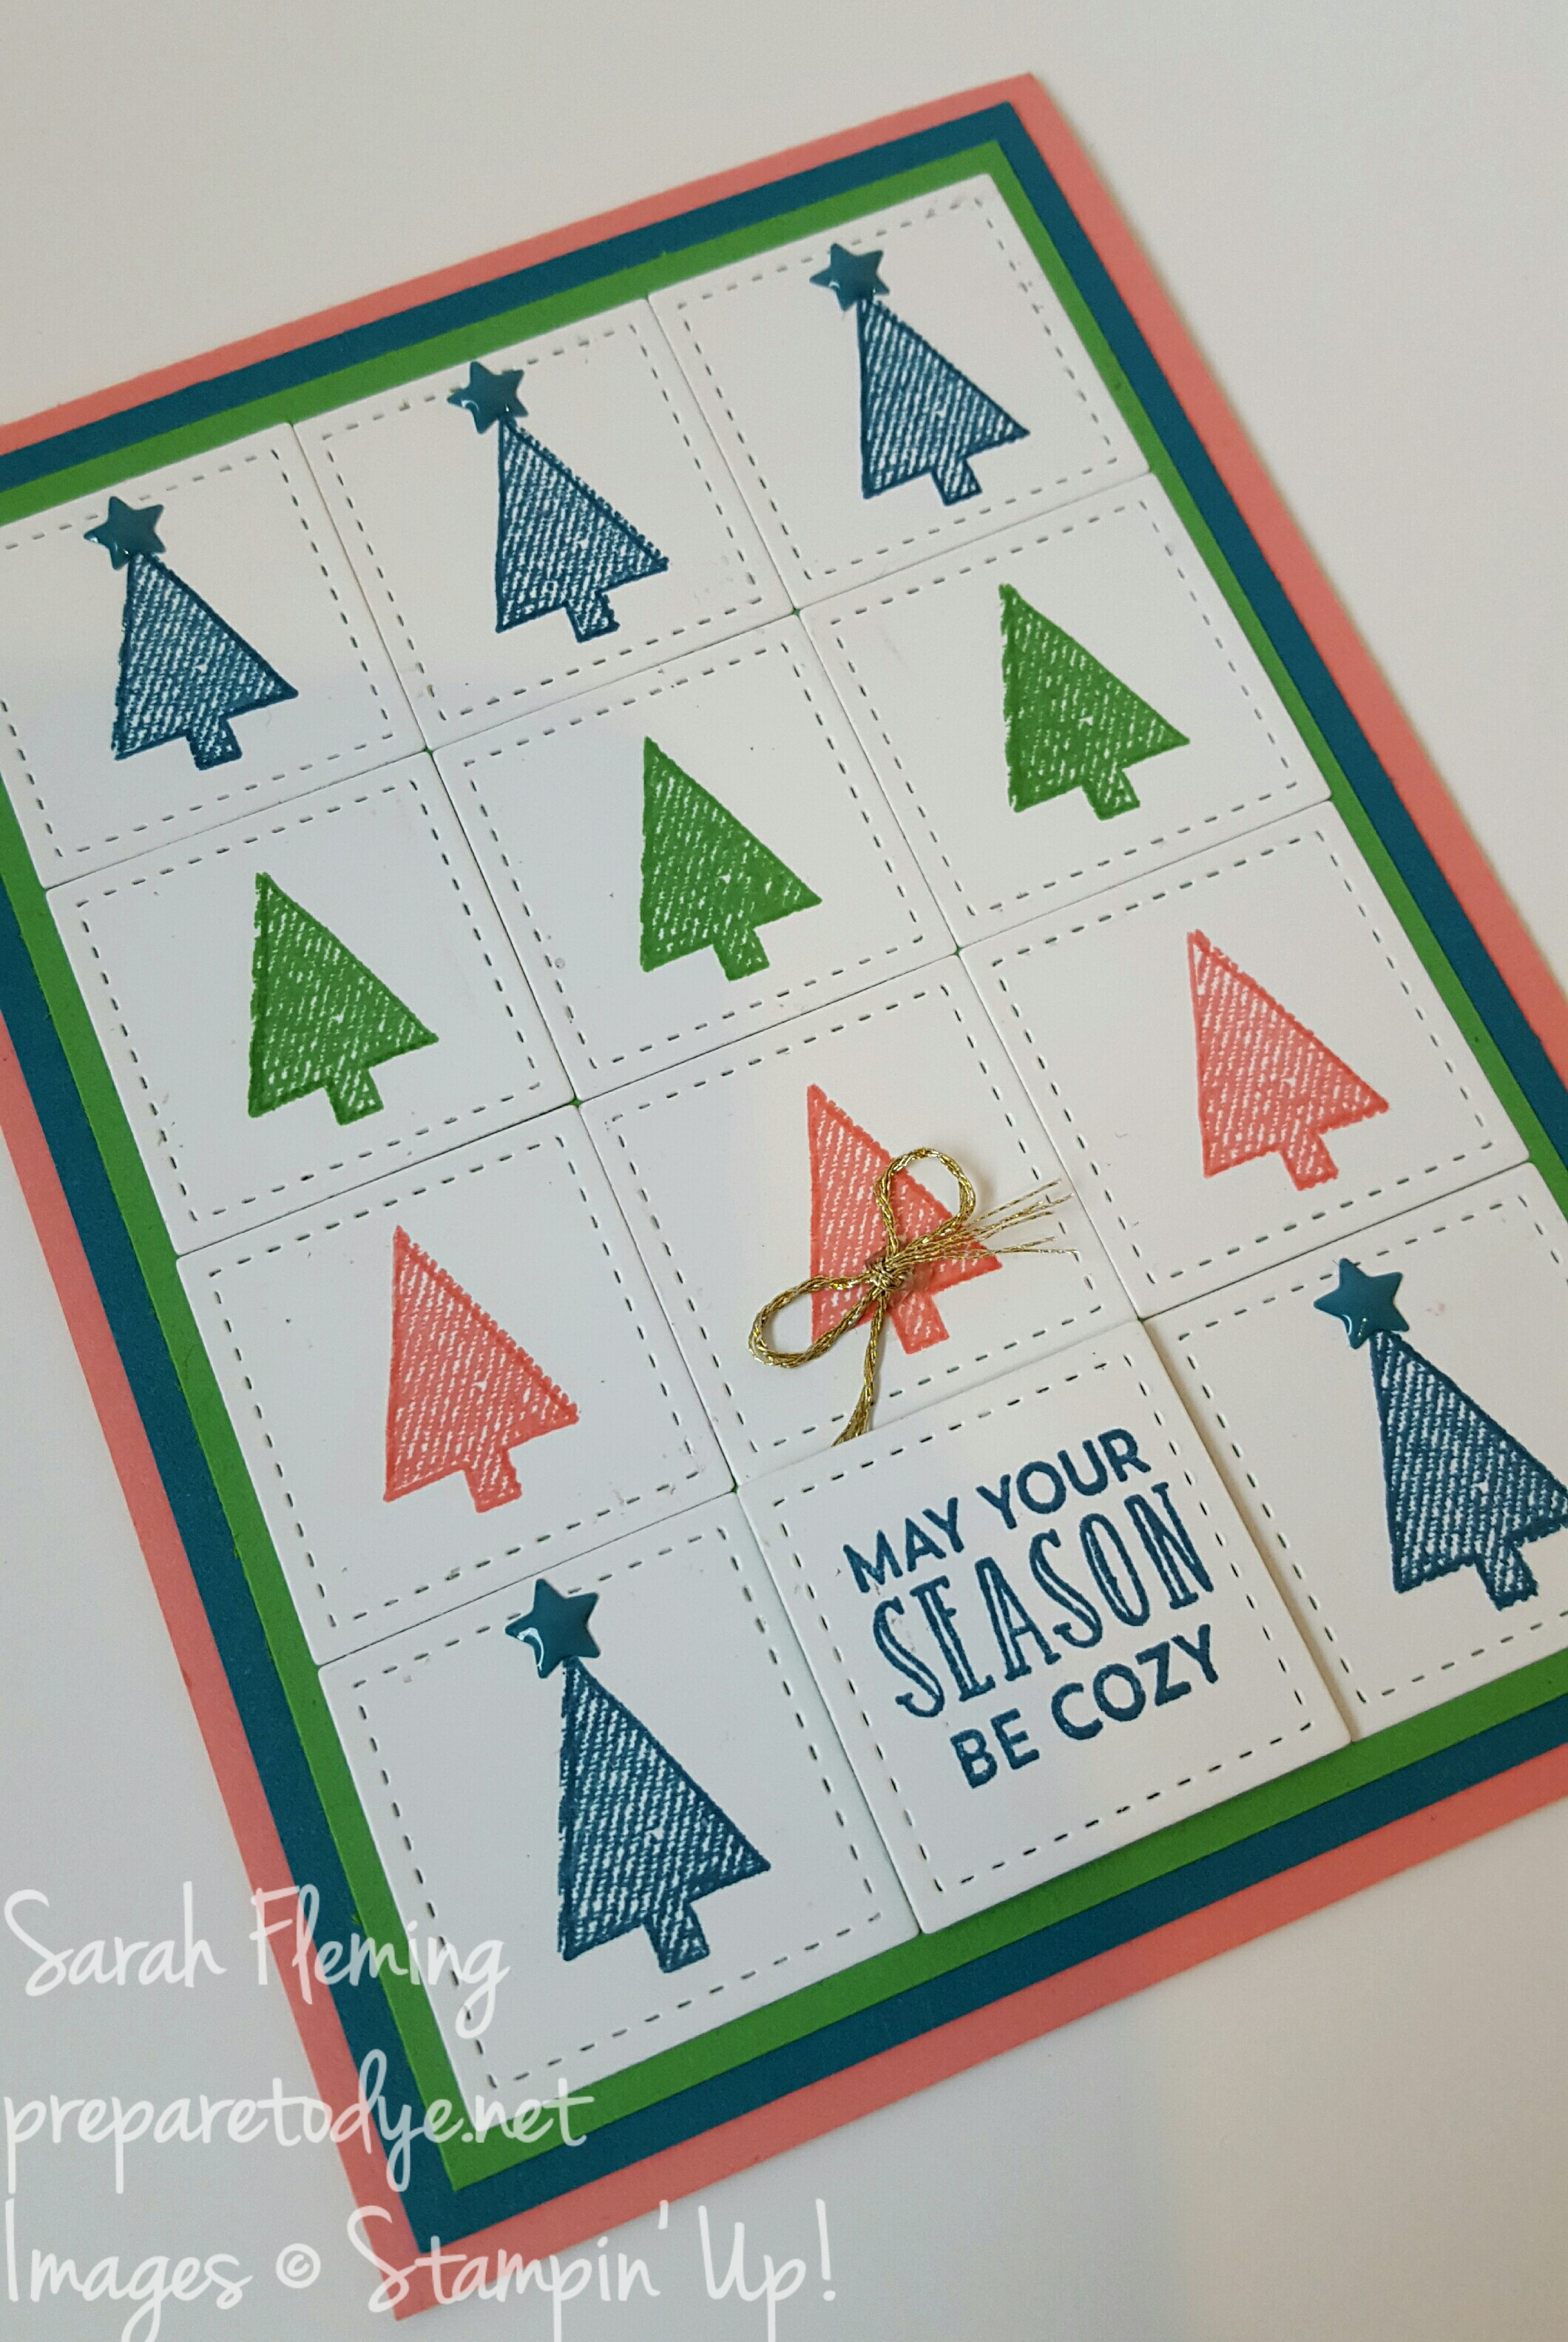 Stampin' Up! Stitched with Cheer stamps and Stitched Shapes Framelits make a fabulous combination! - Sarah Fleming - Prepare to Dye Papercrafts